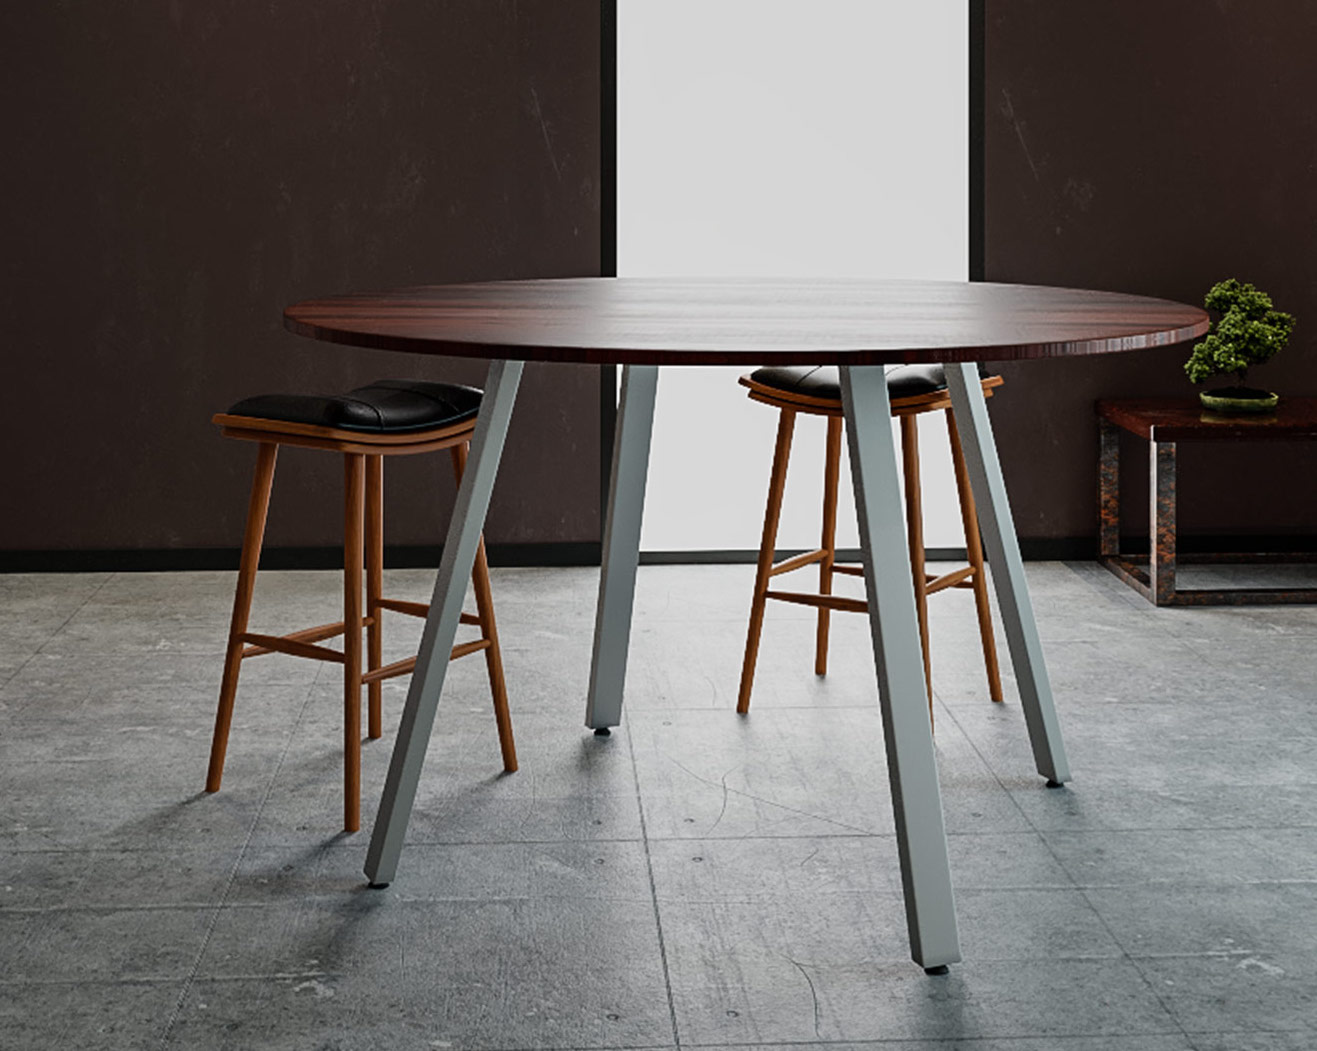 special-t aim xl standing height gathering table